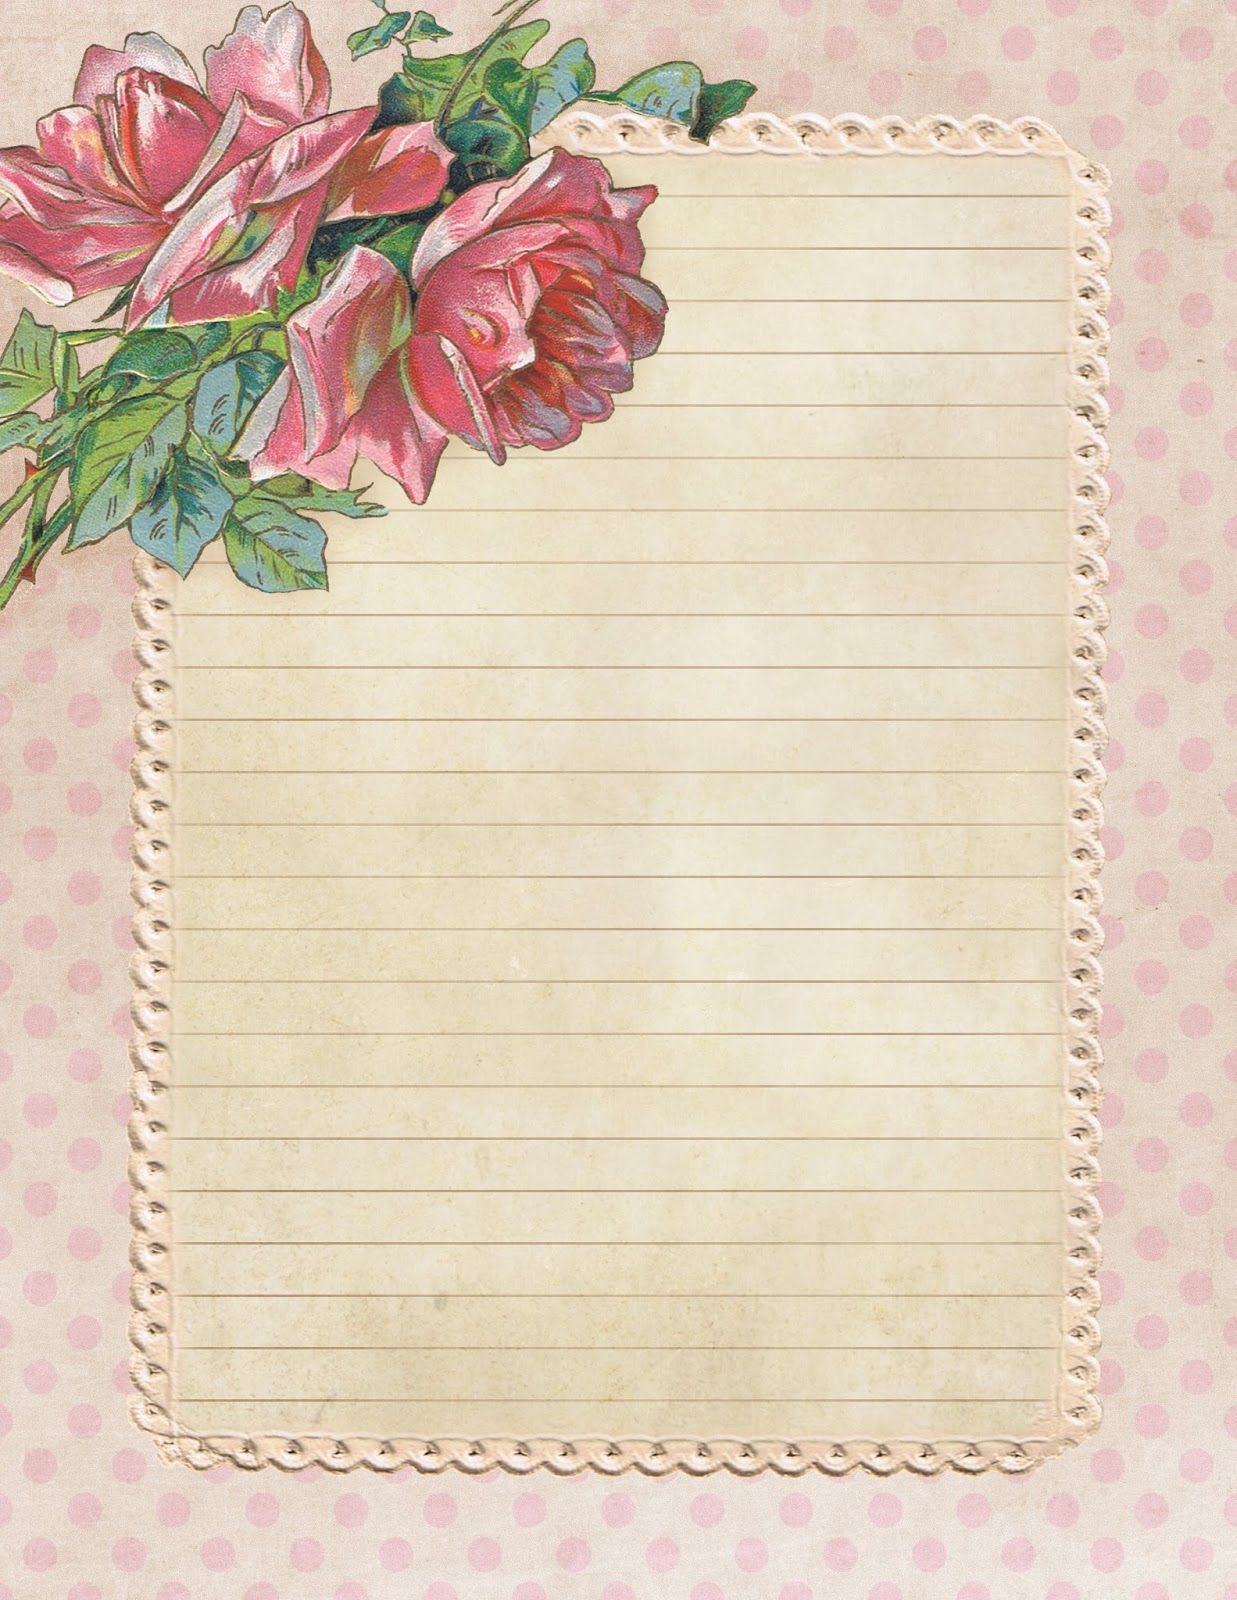 Pin by Donna Gilmore on PRINTABLES | Note paper, Writing